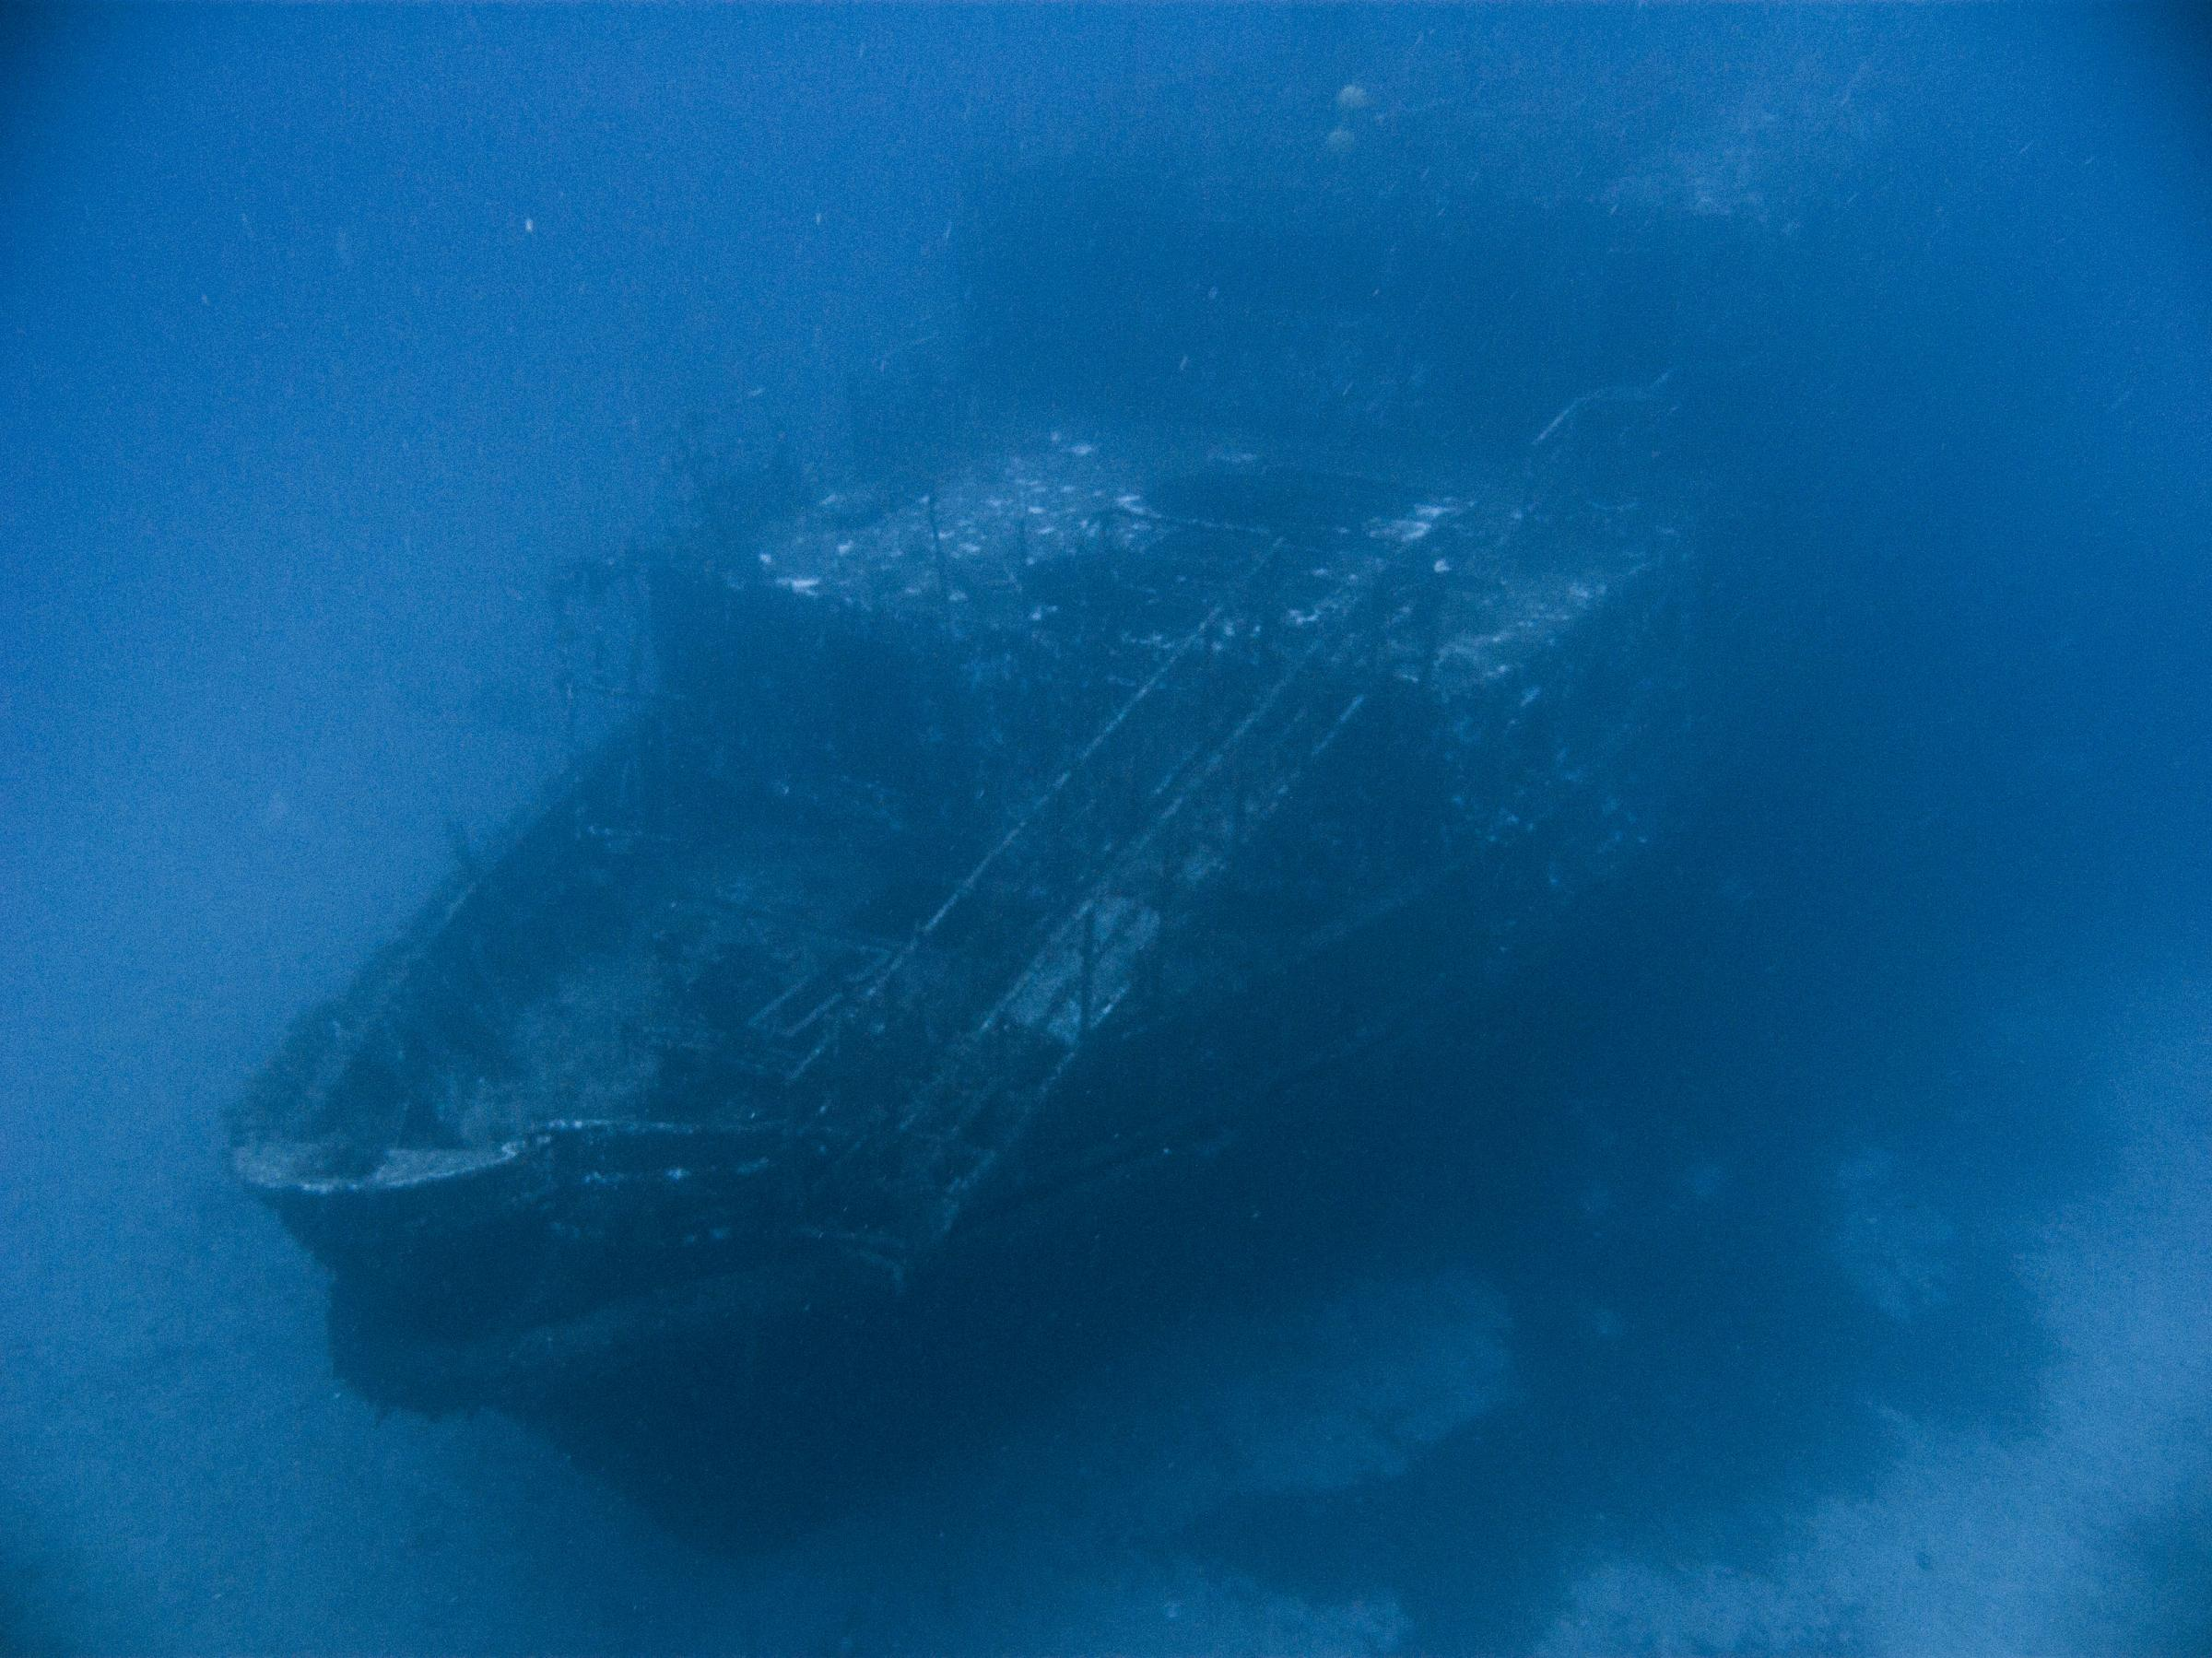 MV Karwela wreck at Gozo